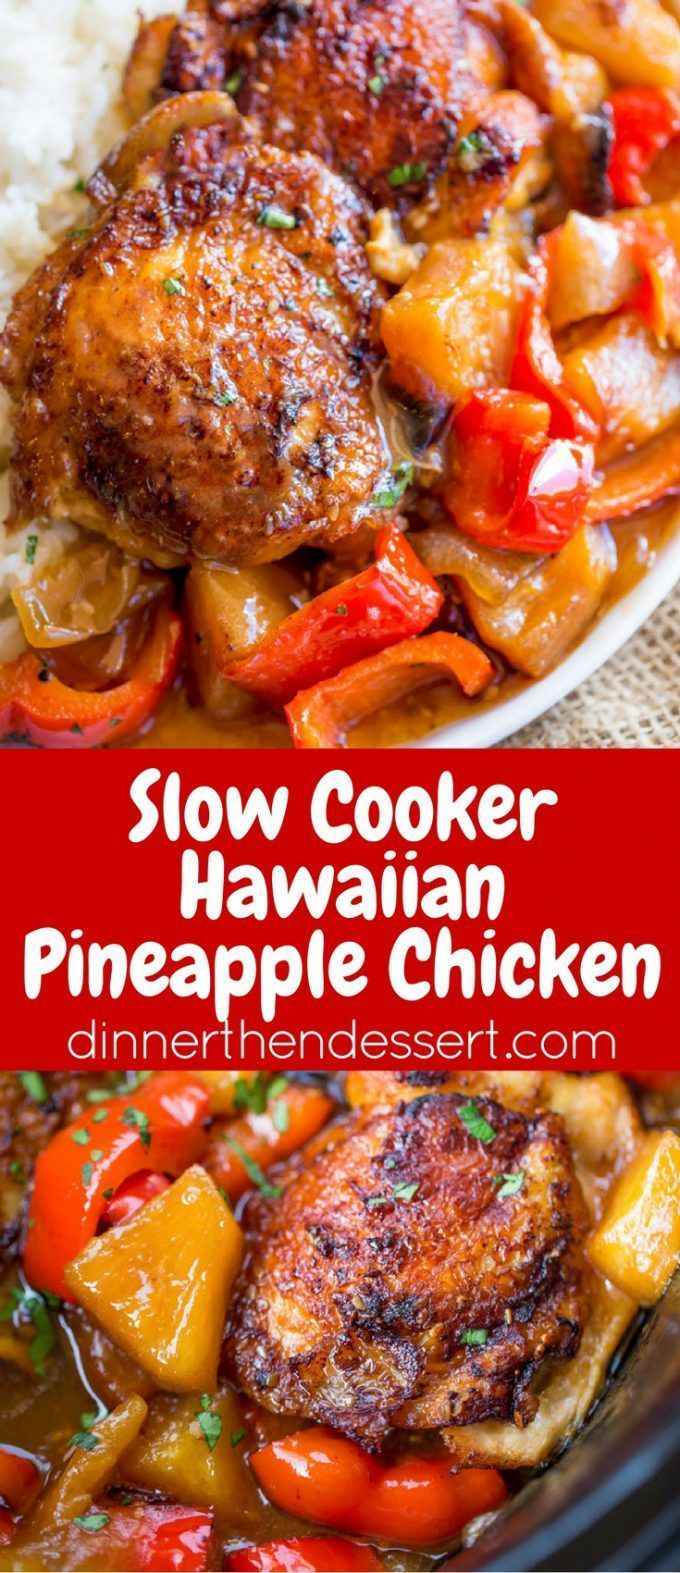 Slow Cooker Hawaiian Pineapple Chicken With Crispy Chicken Thighs Fresh Pineapple Chunks Onions And